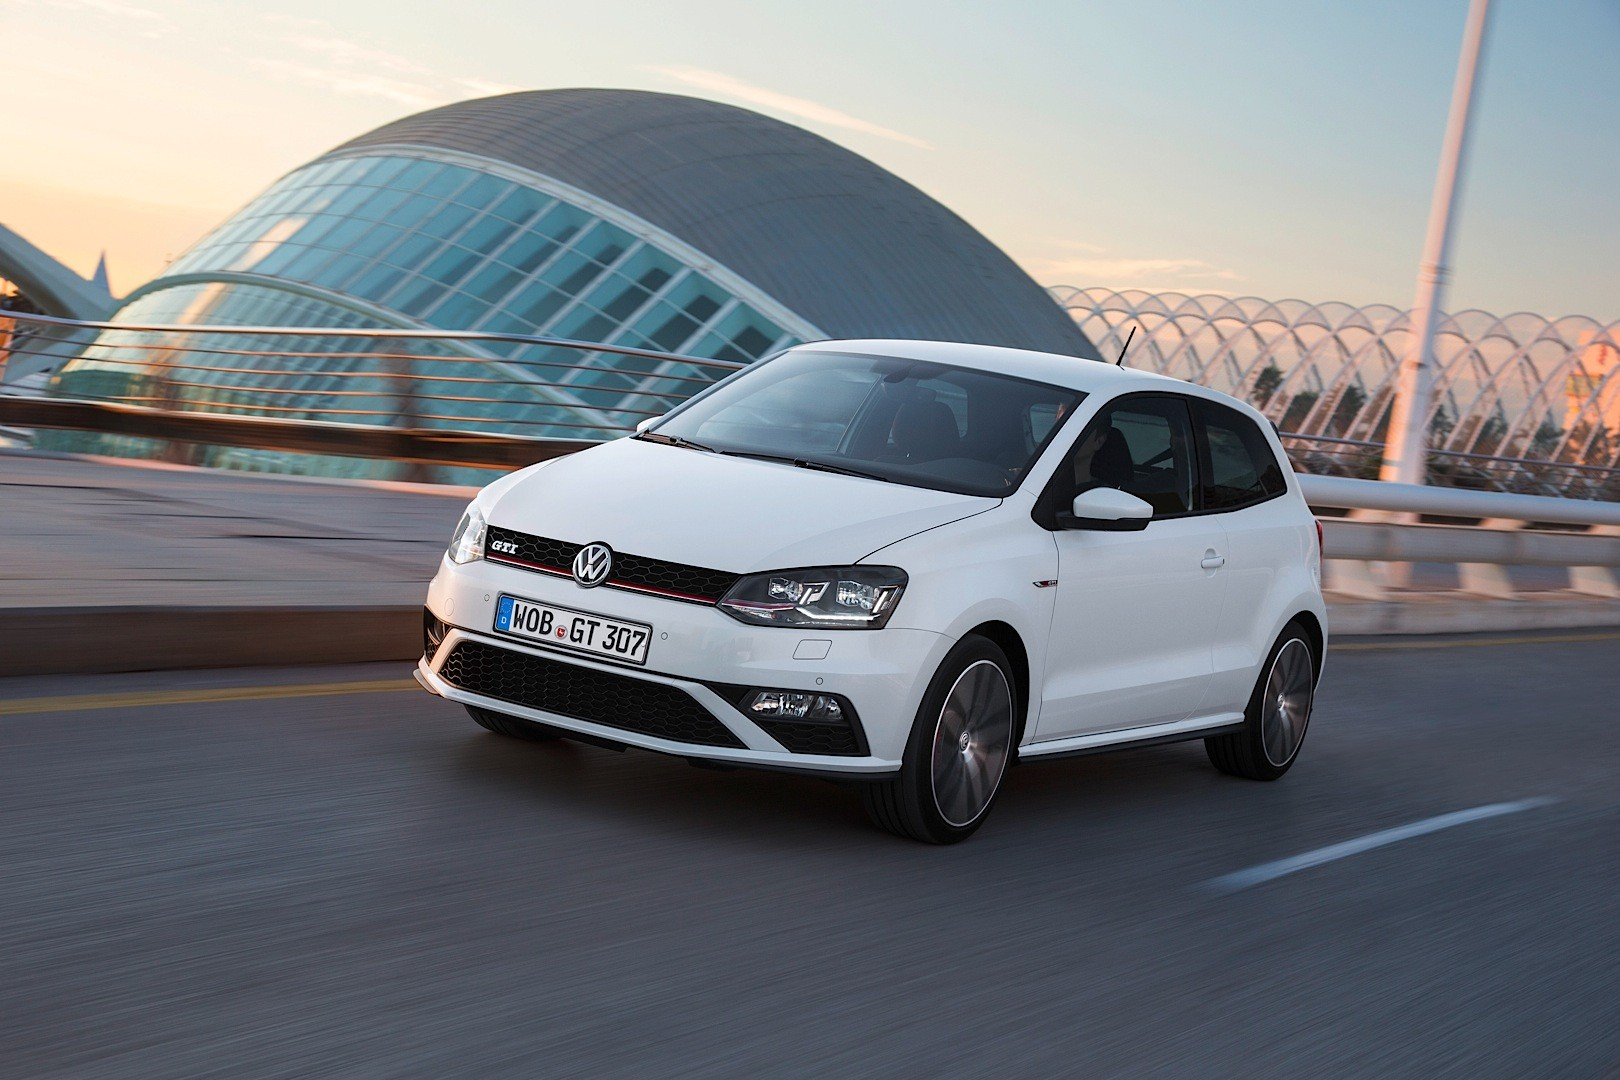 2015 Volkswagen Polo GTI (6R Facelift): New Photos and Details ...